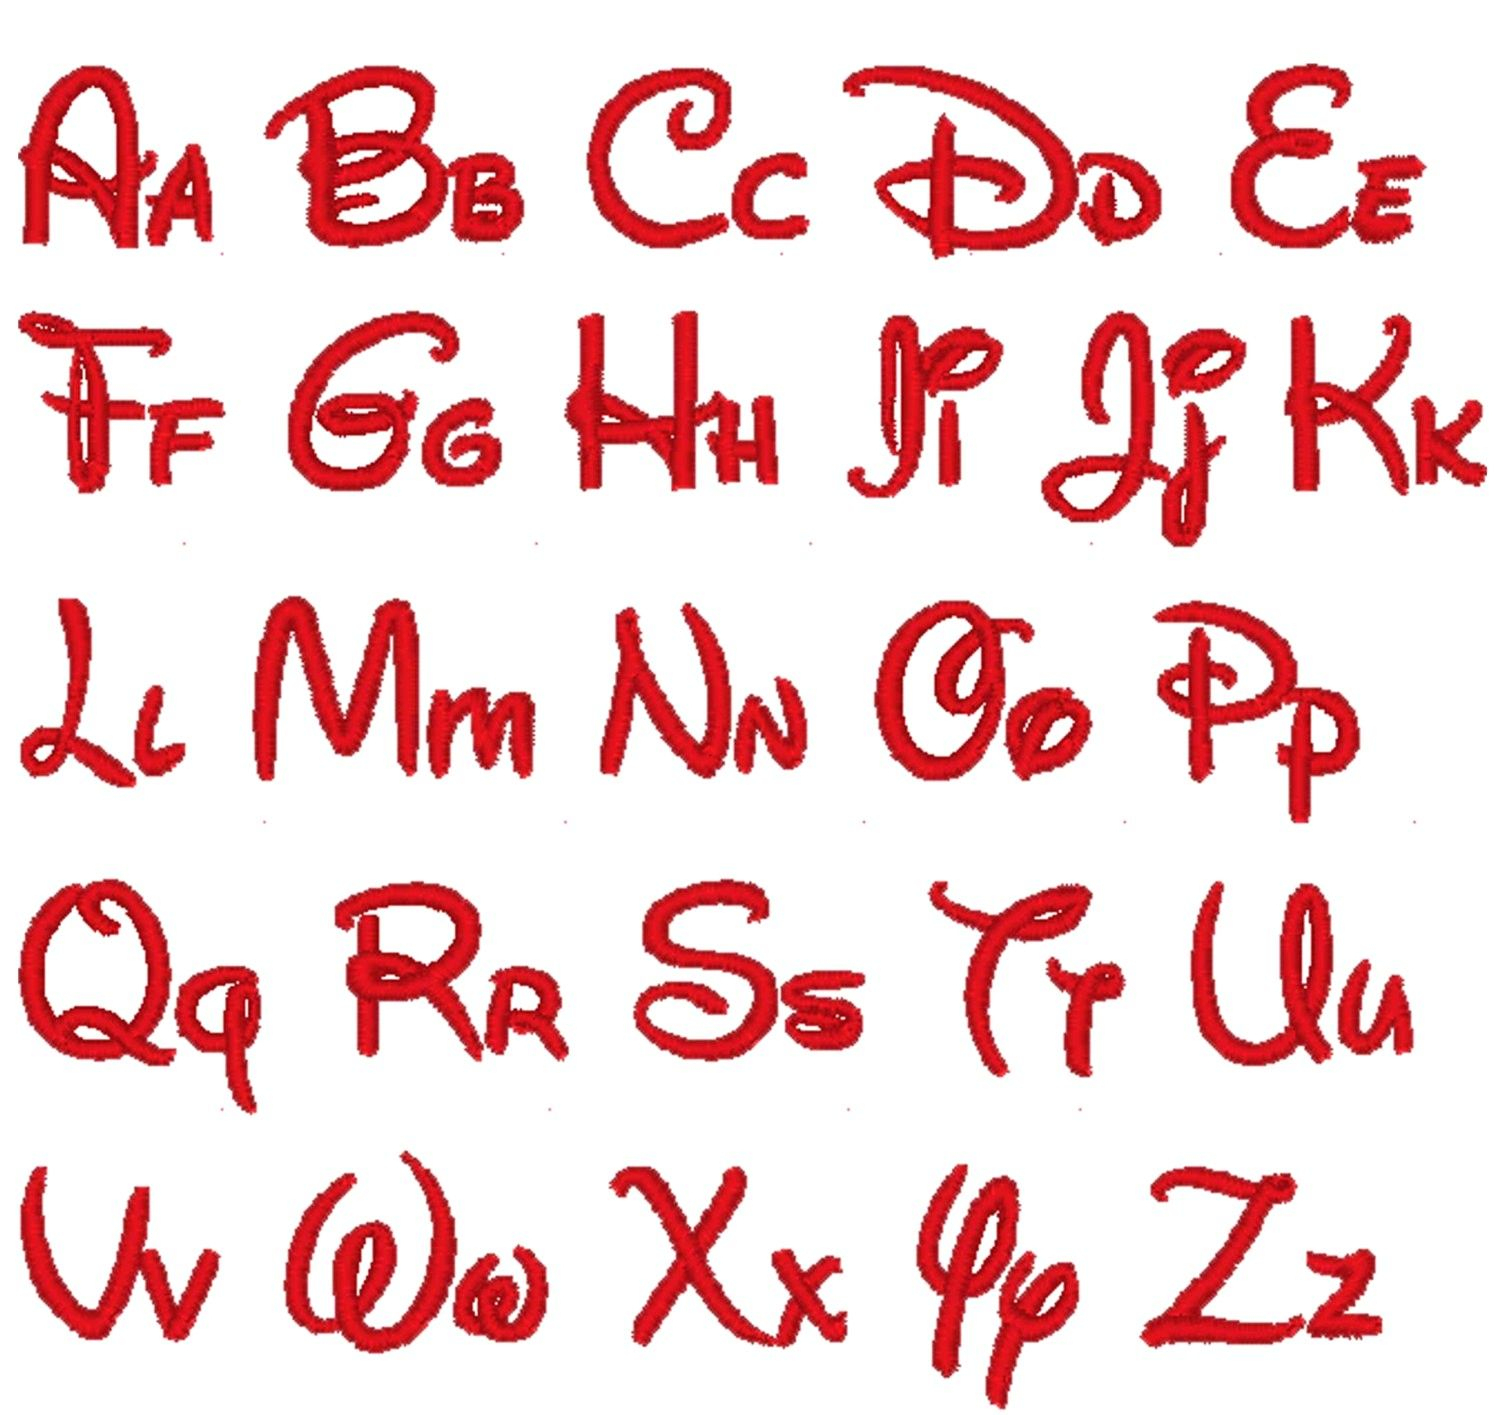 Disney Mickey Mouse Fonts 178078 Free Printable Letter Stencils - Free Printable Disney Font Stencils